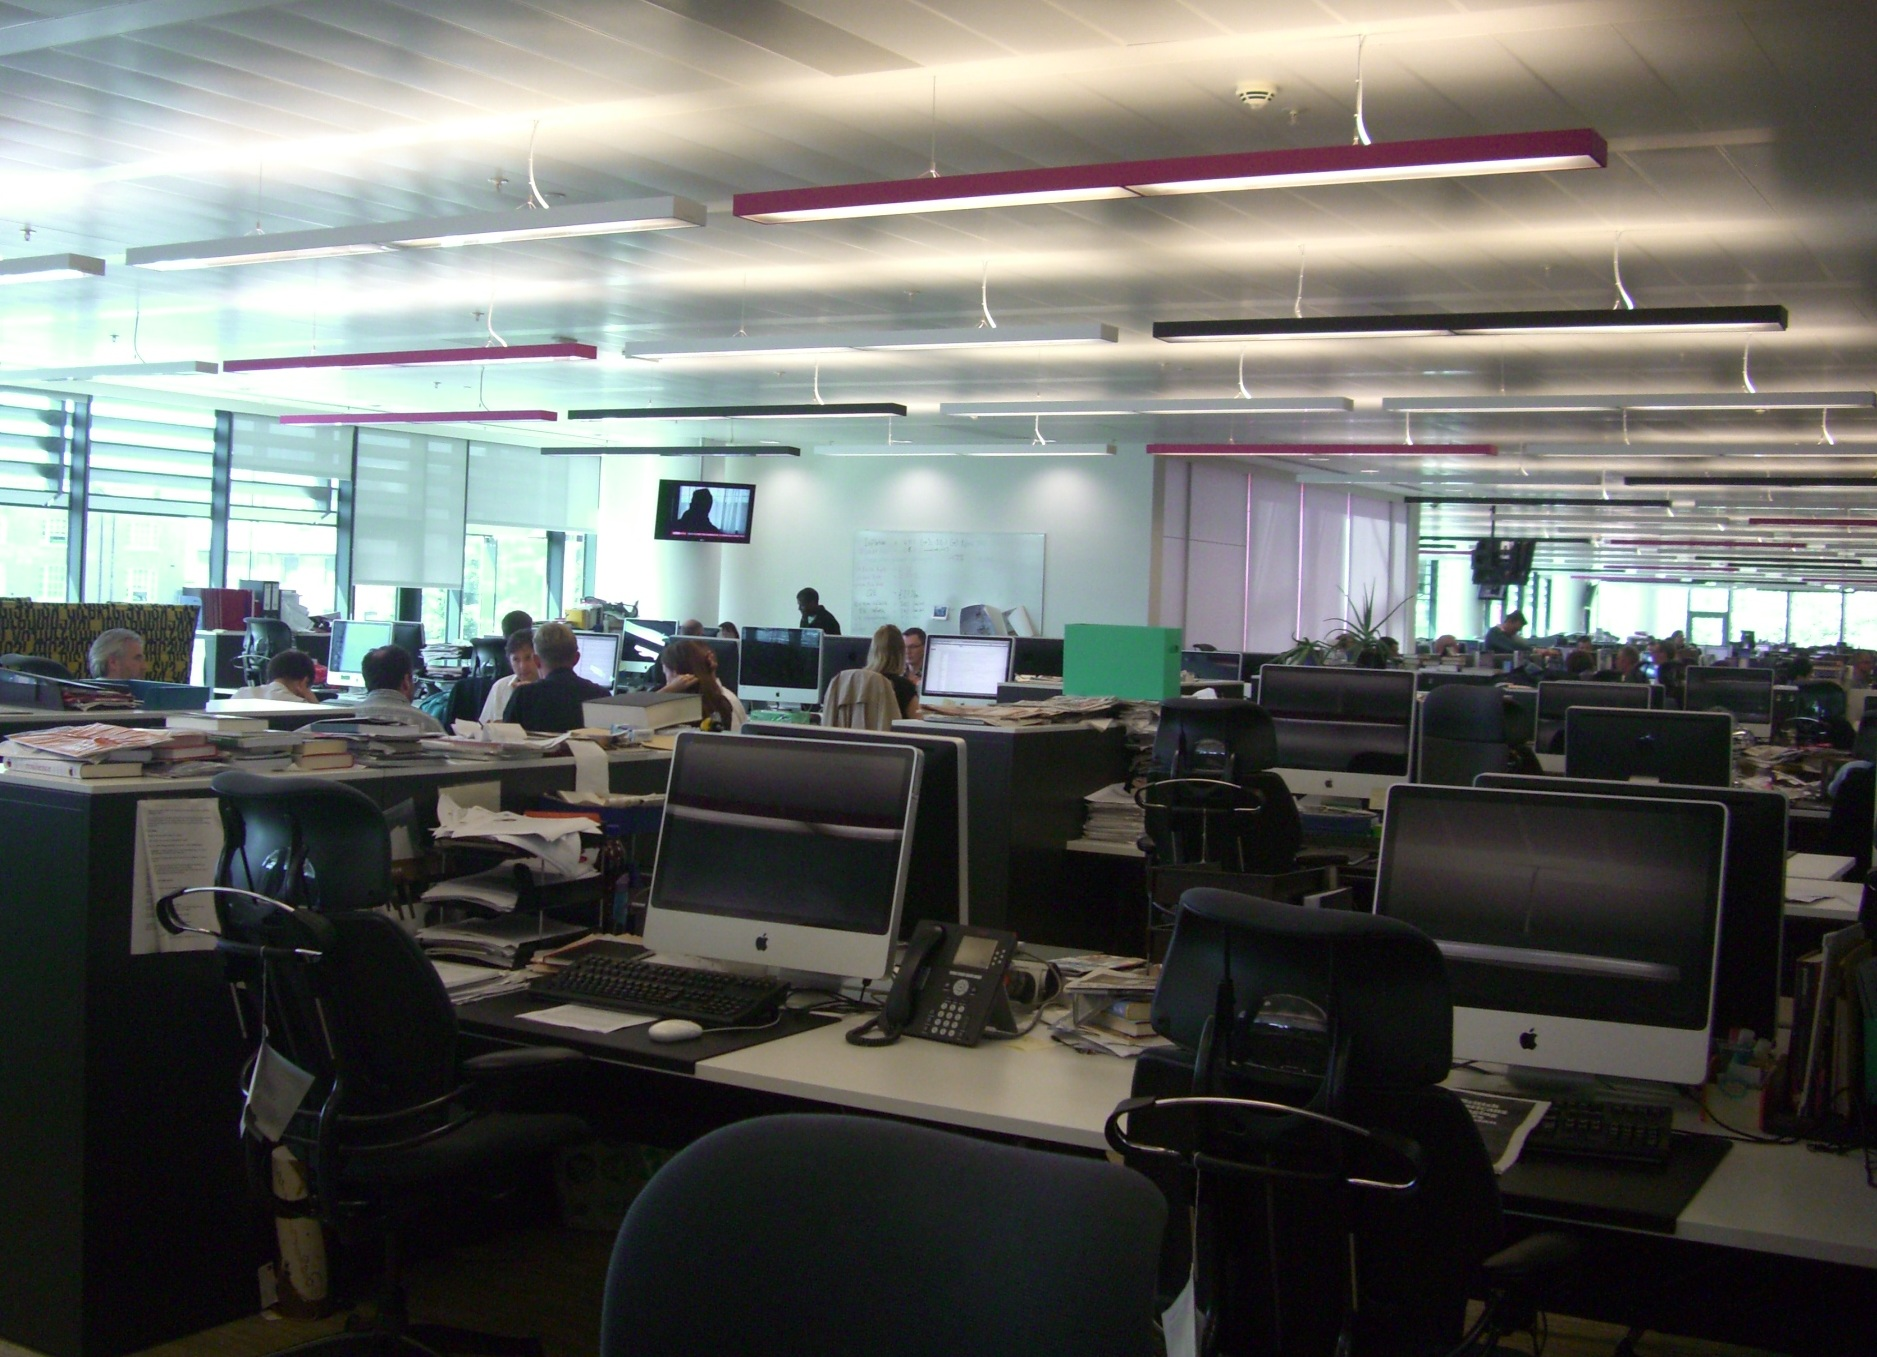 Inside the Guardian newspaper offices